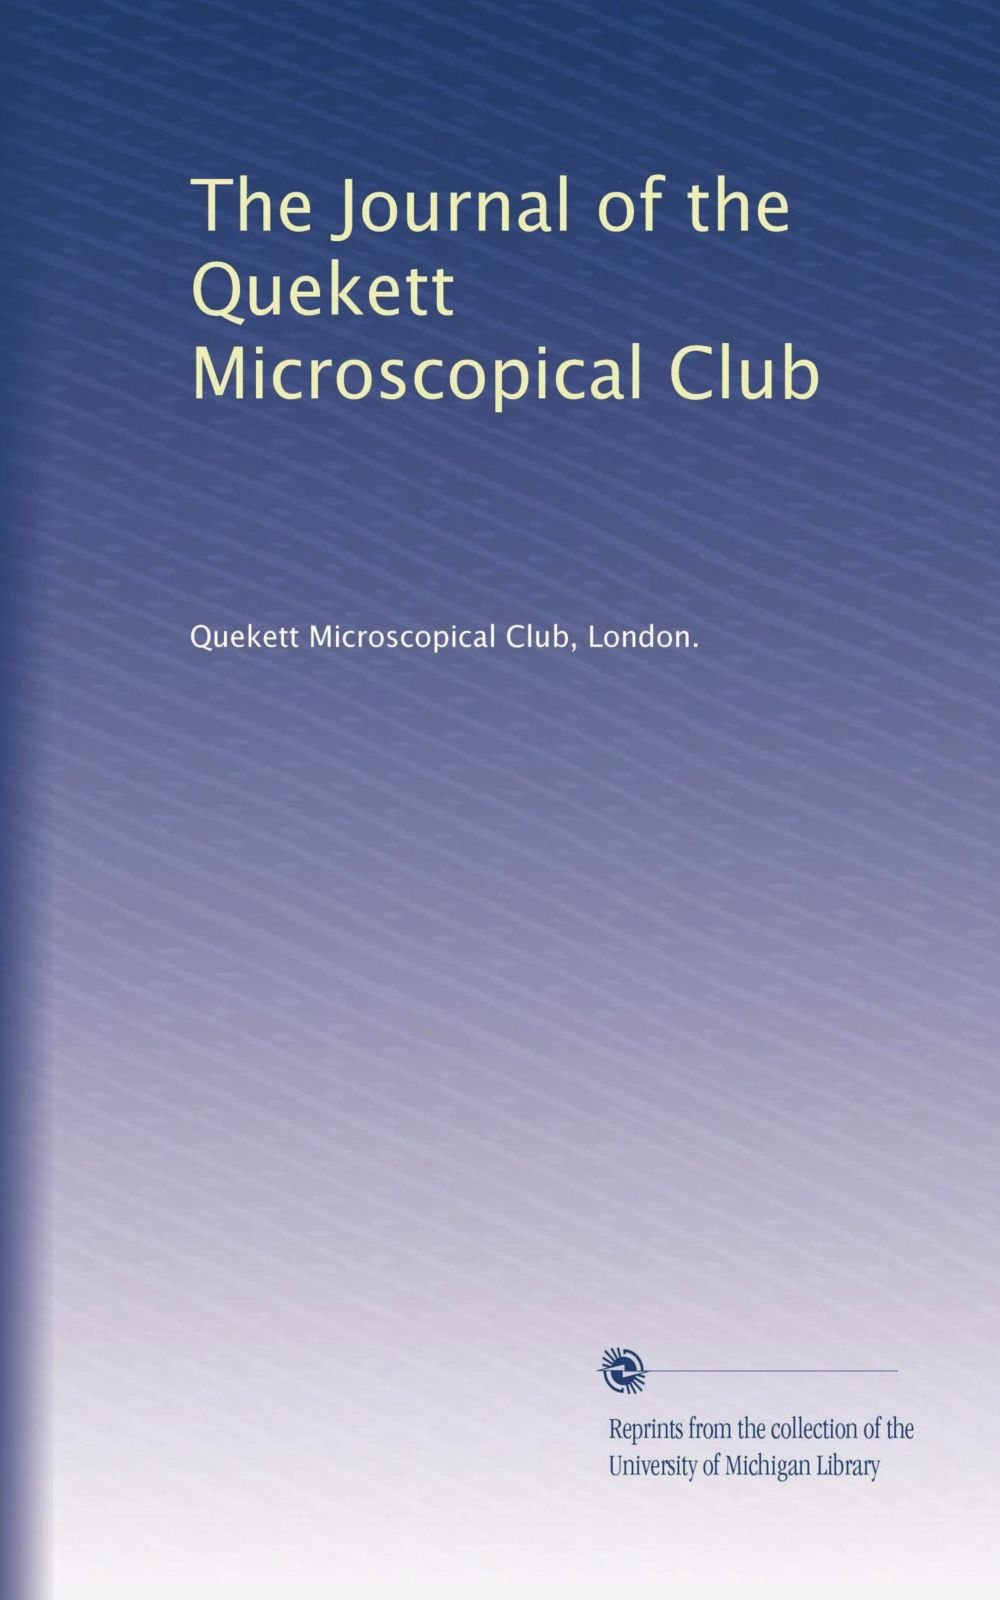 Read Online The Journal of the Quekett Microscopical Club pdf